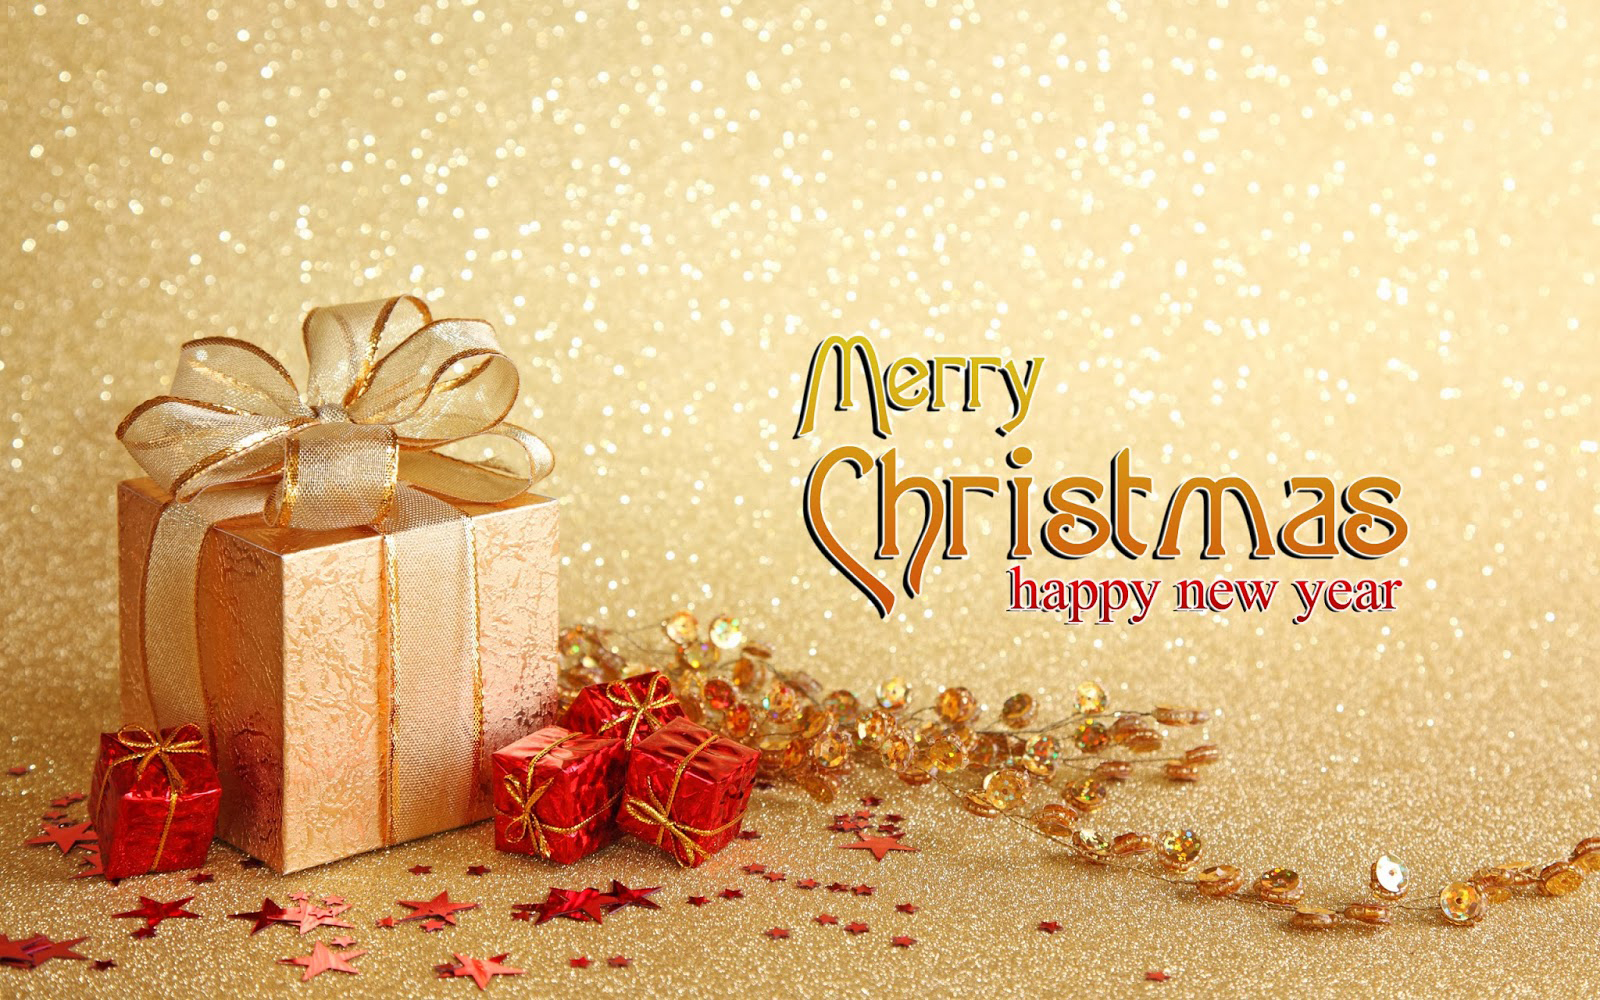 Top 100 merry christmas wishes quotes messages christmas quotes merry christmas wishes kristyandbryce Image collections